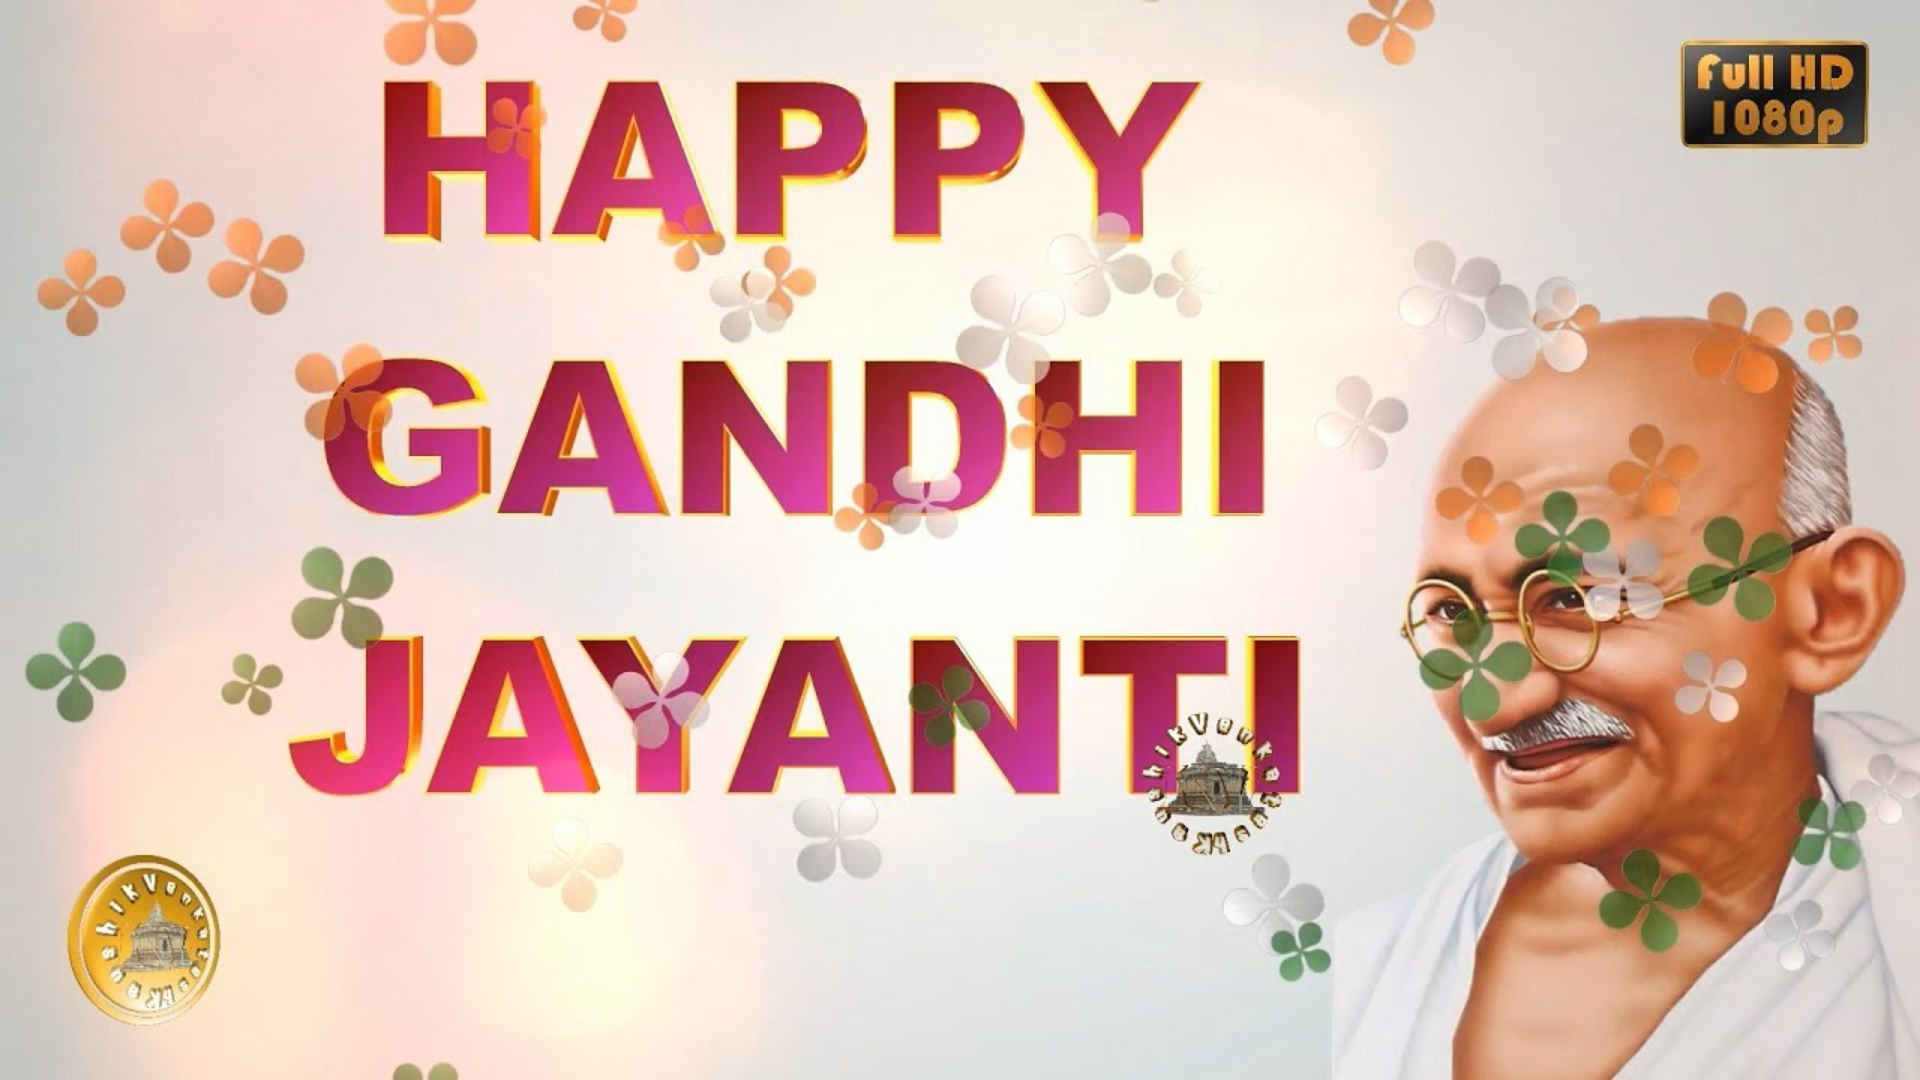 Greetings Image for Indian National Festival - Gandhi Jayanti held on 2 October every Year.